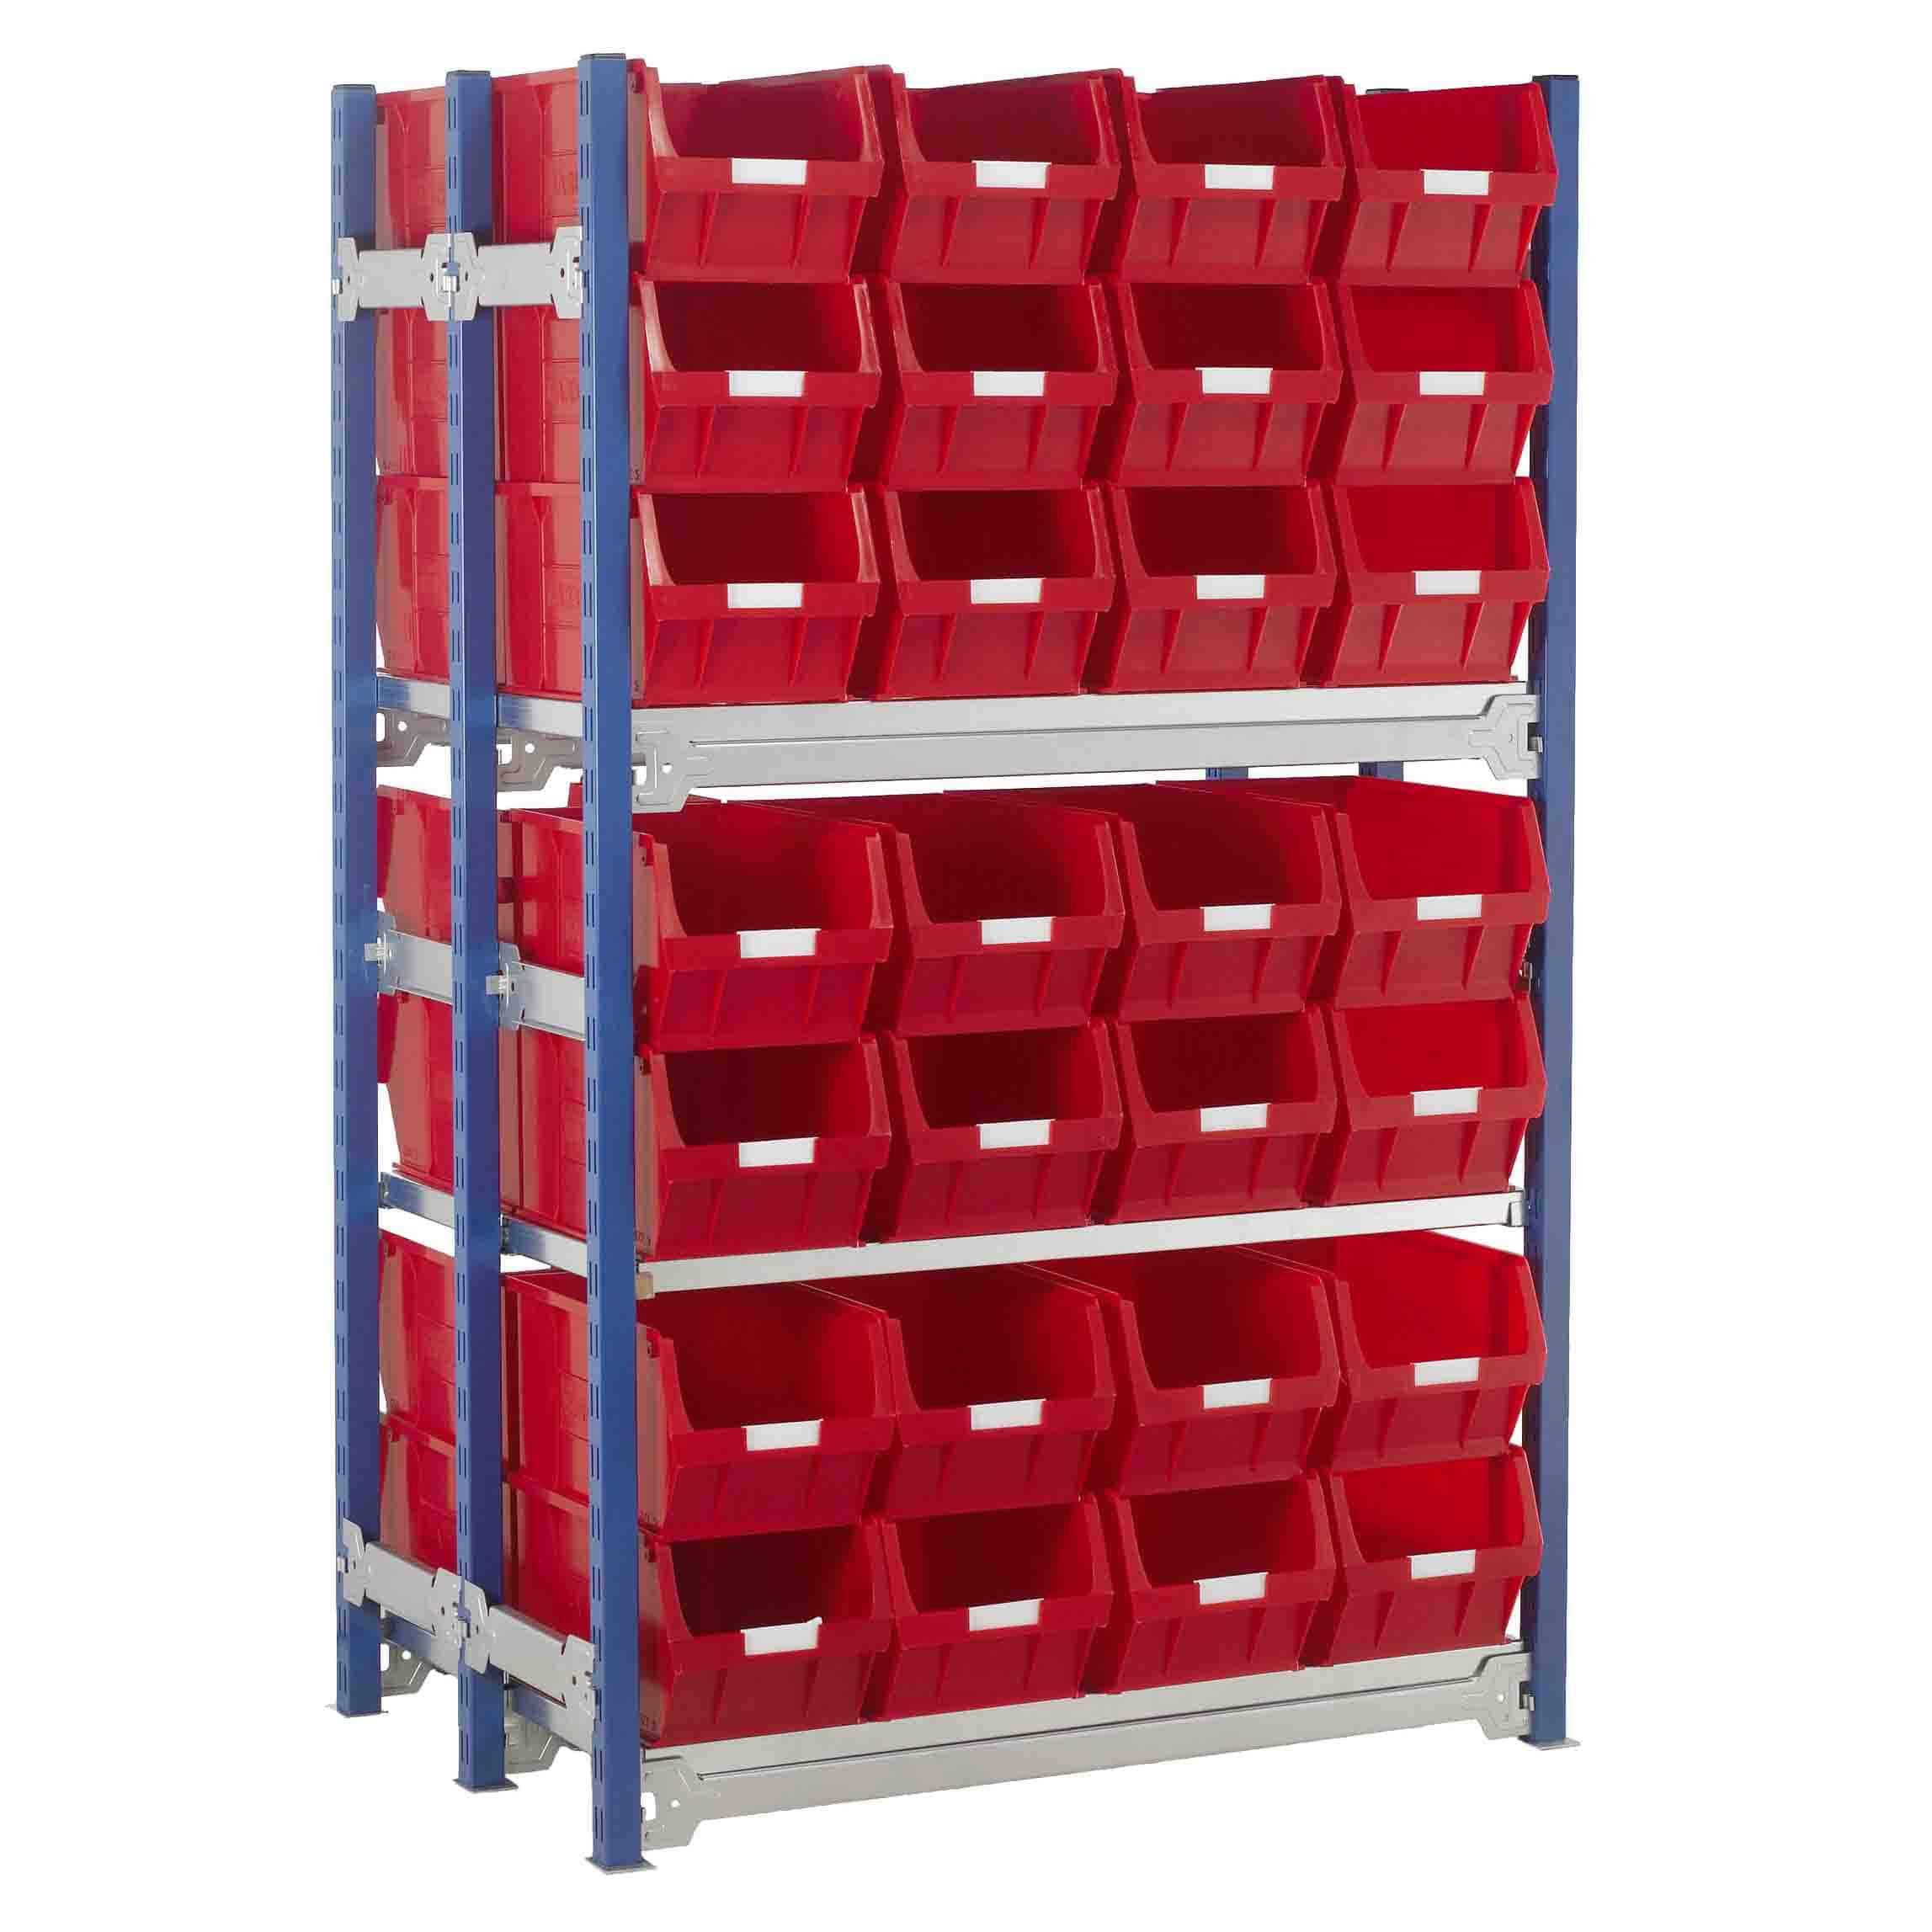 Toprax Shelving Double Bay with 56 TC5 Bins